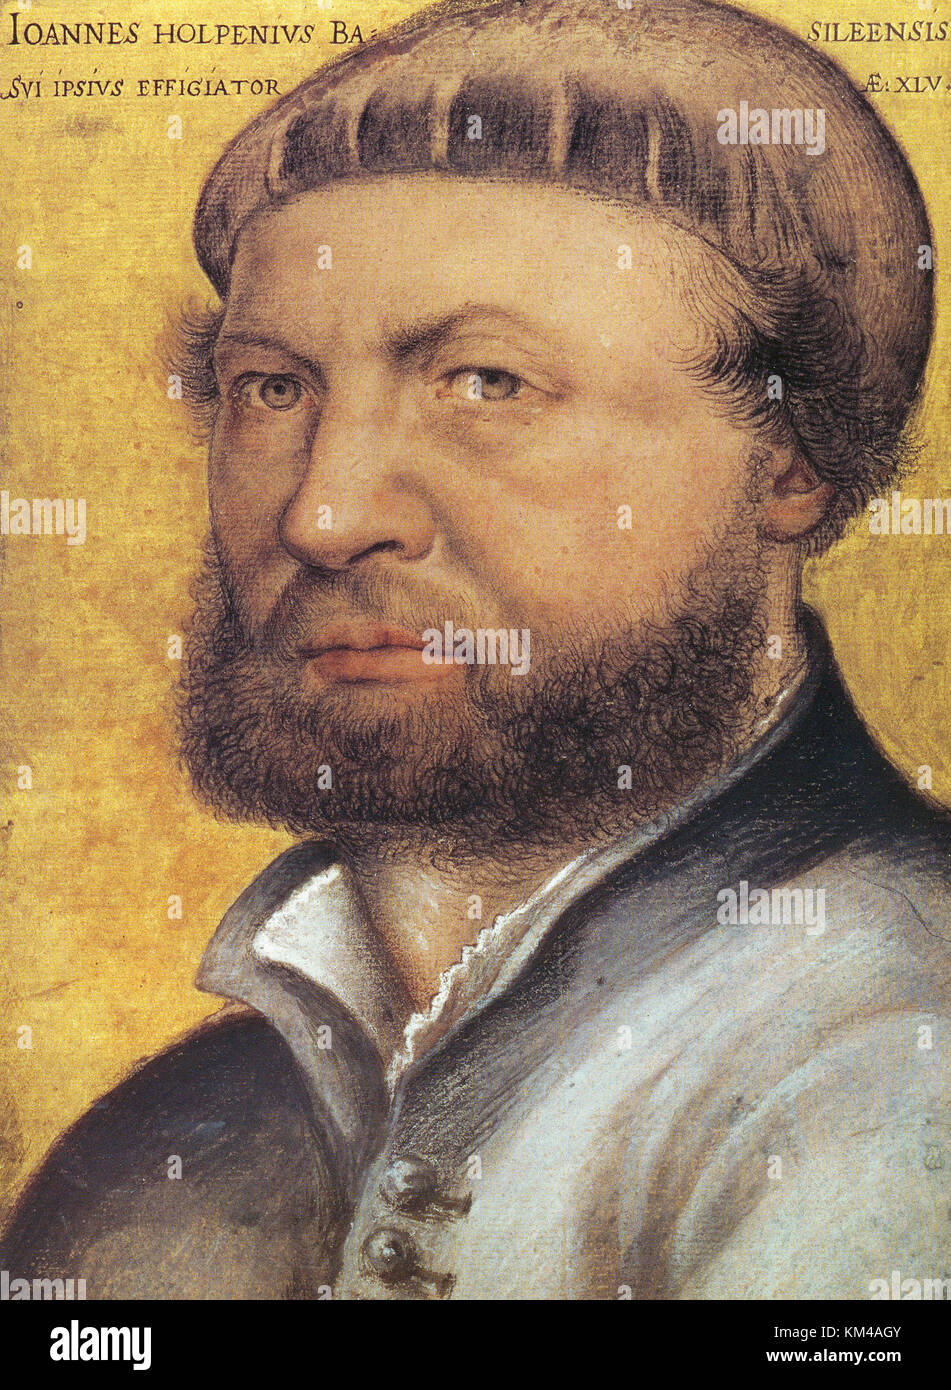 Hans Holbein the Younger, German and Swiss artist - Stock Image